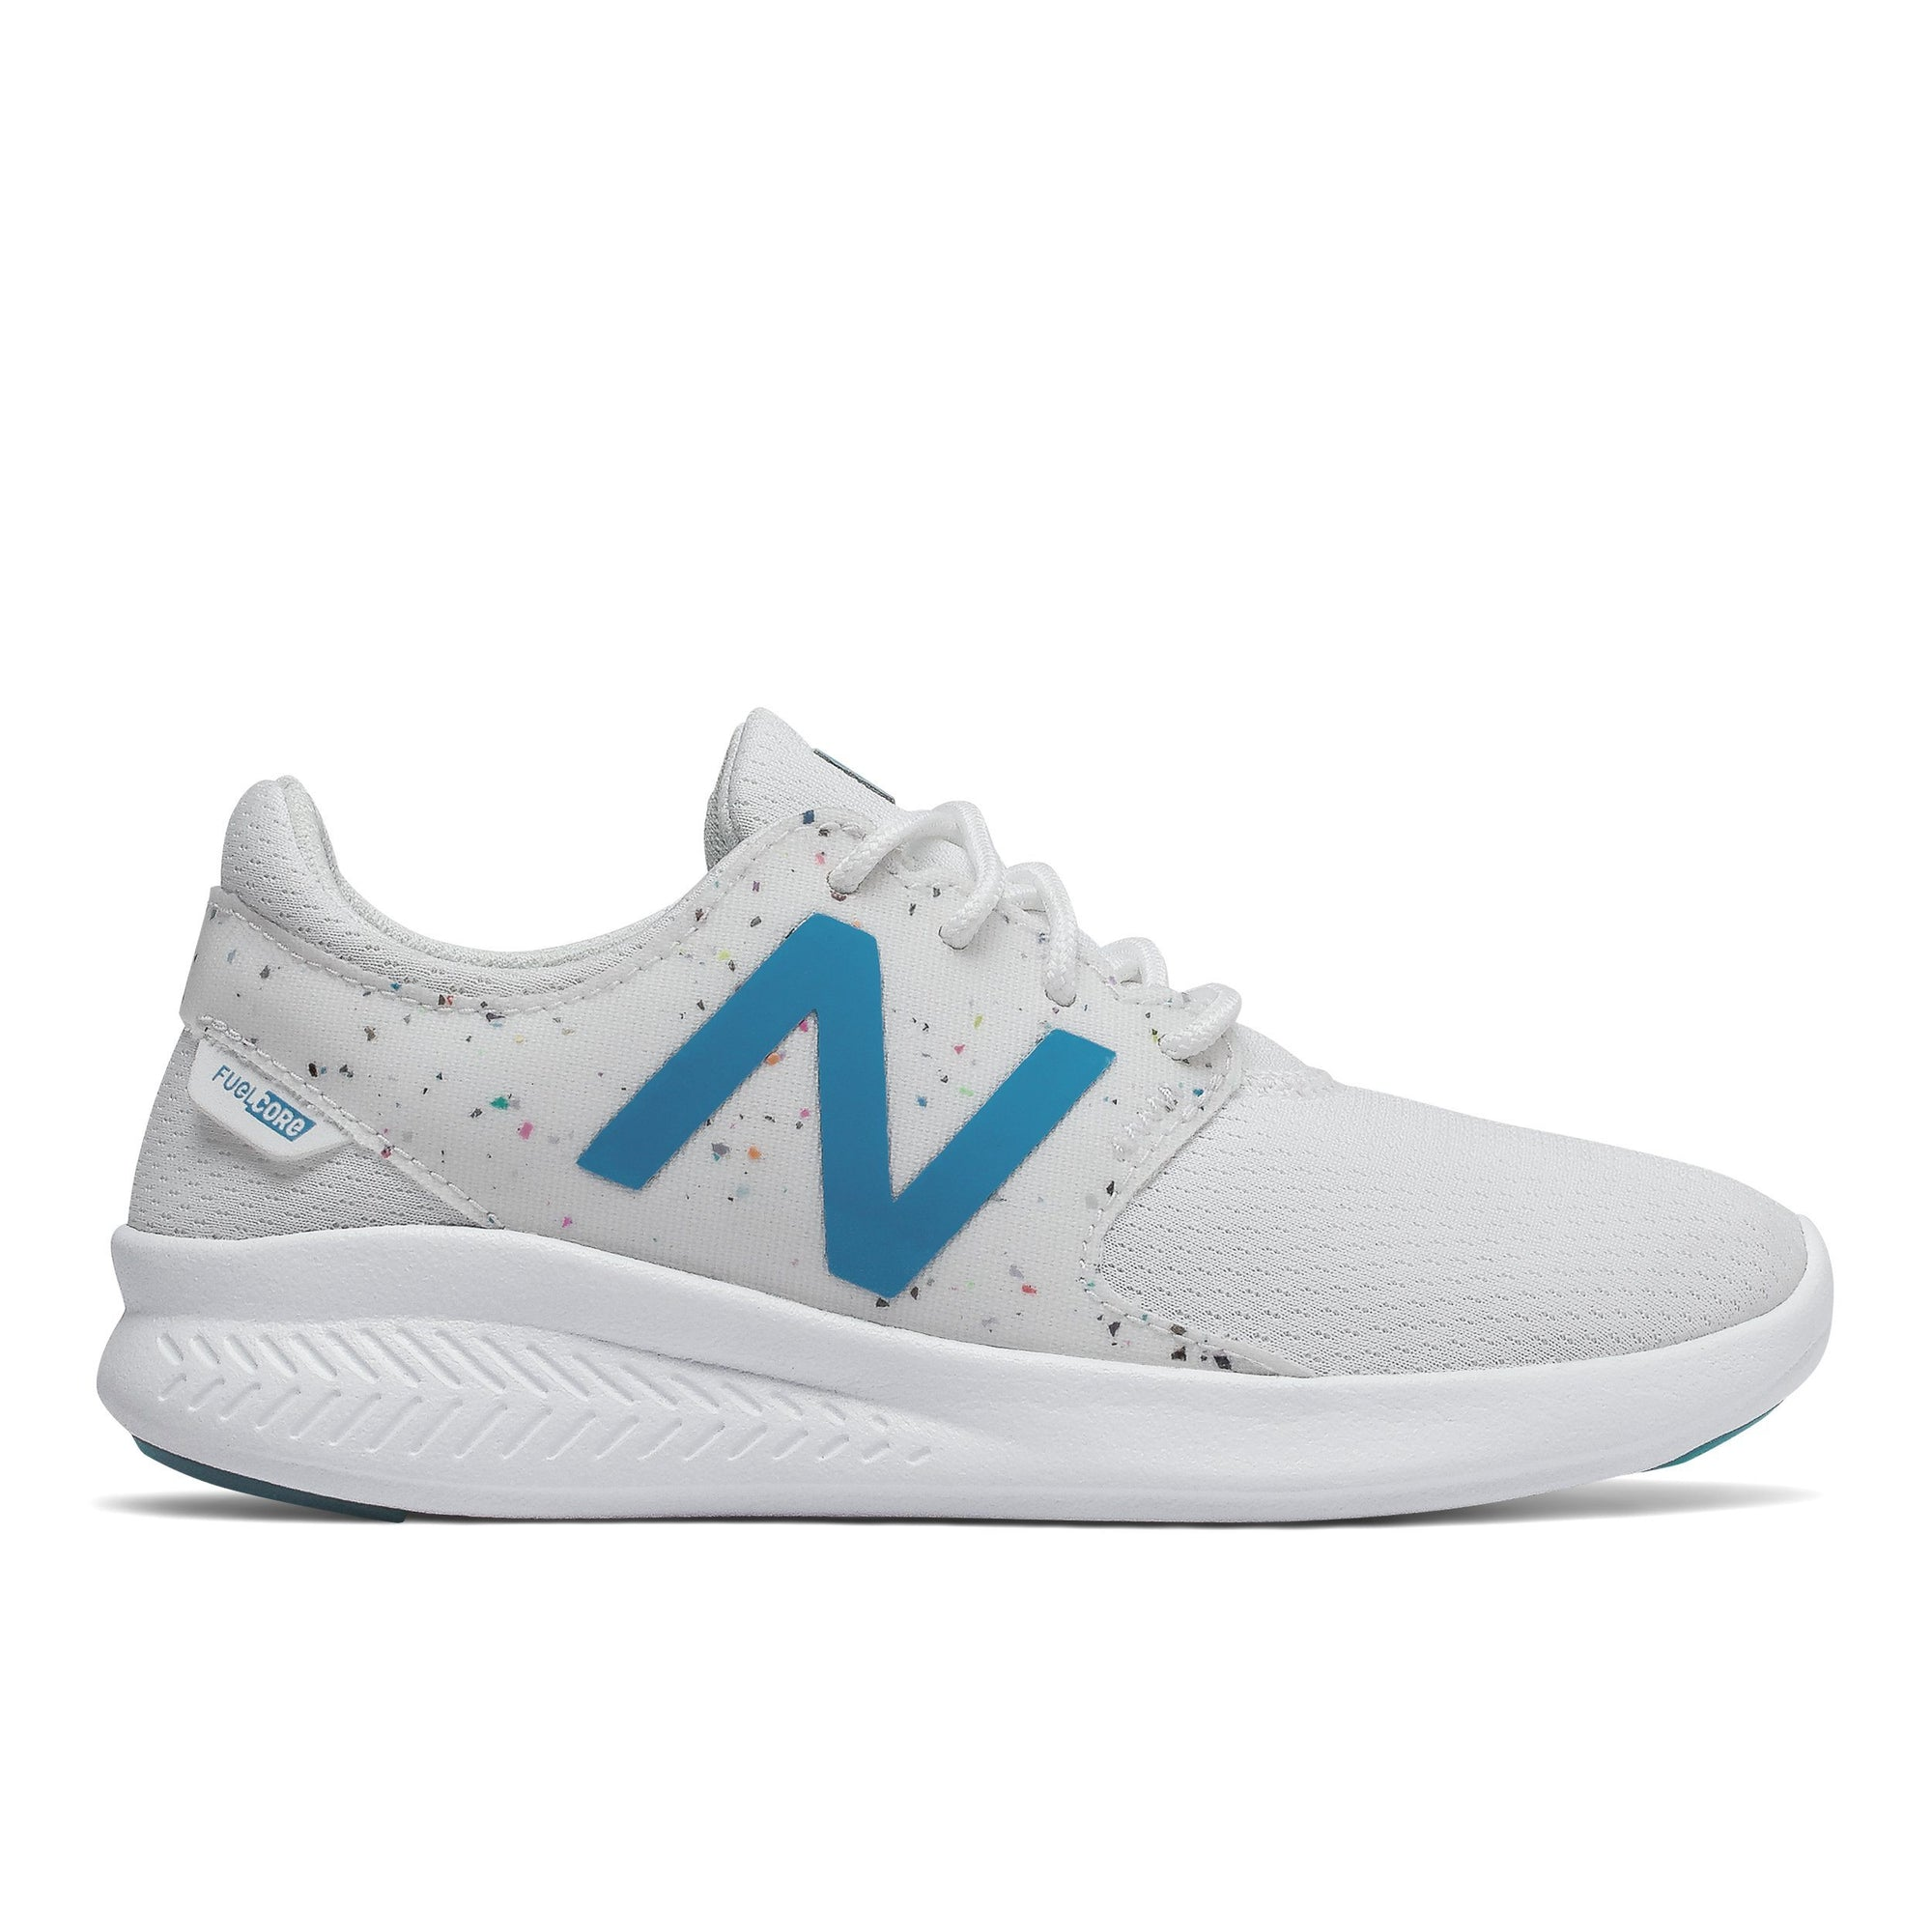 New Balance Kids FuelCore Coast v3 Confetti - White SP-Footwear-Kids New Balance